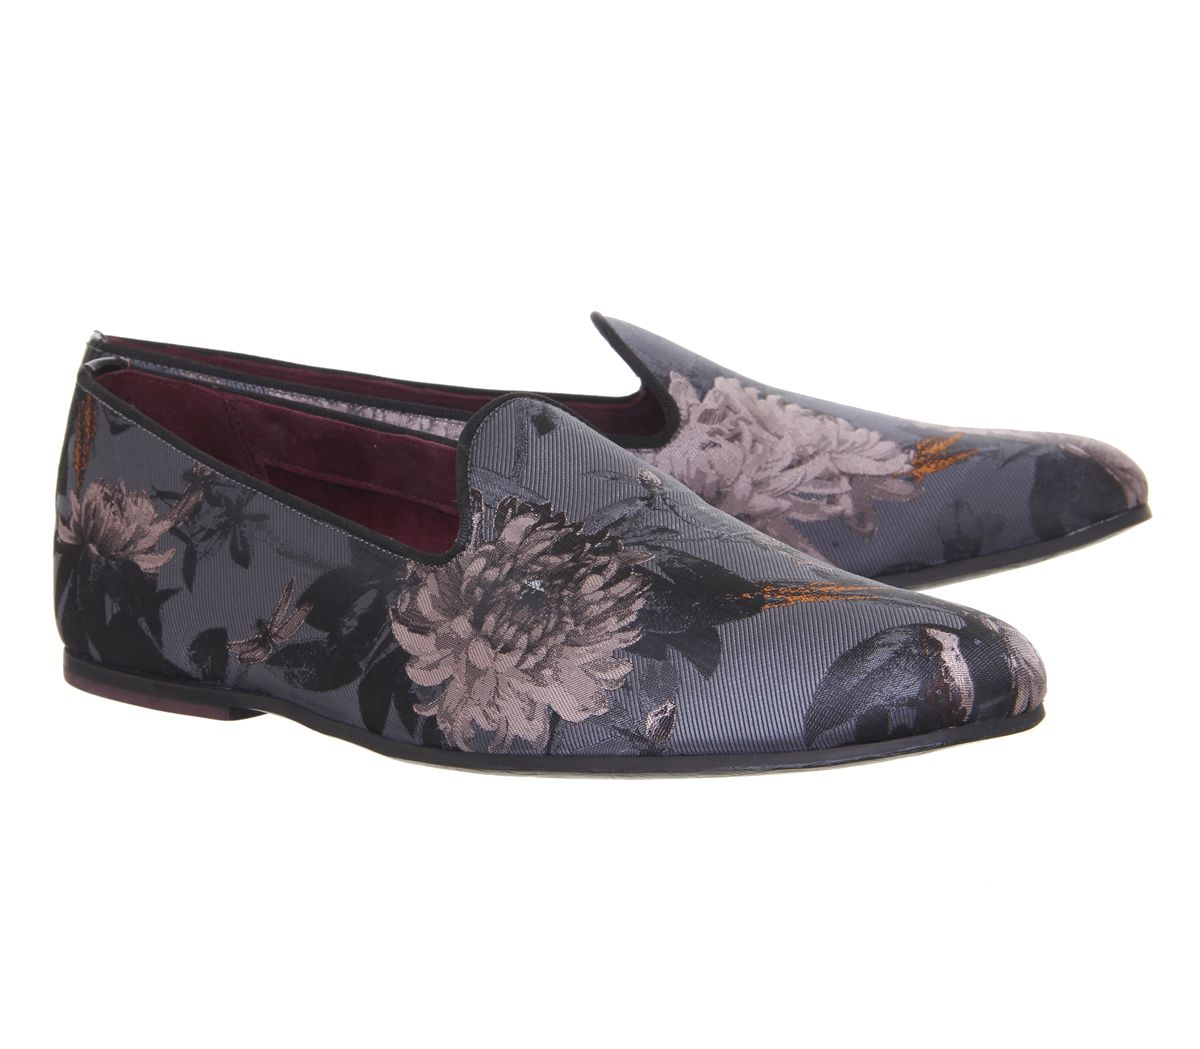 99b0dd3d4c71b7 Sentinel Mens Ted Baker Vihan Evening Slippers Grey Floral Formal Shoes